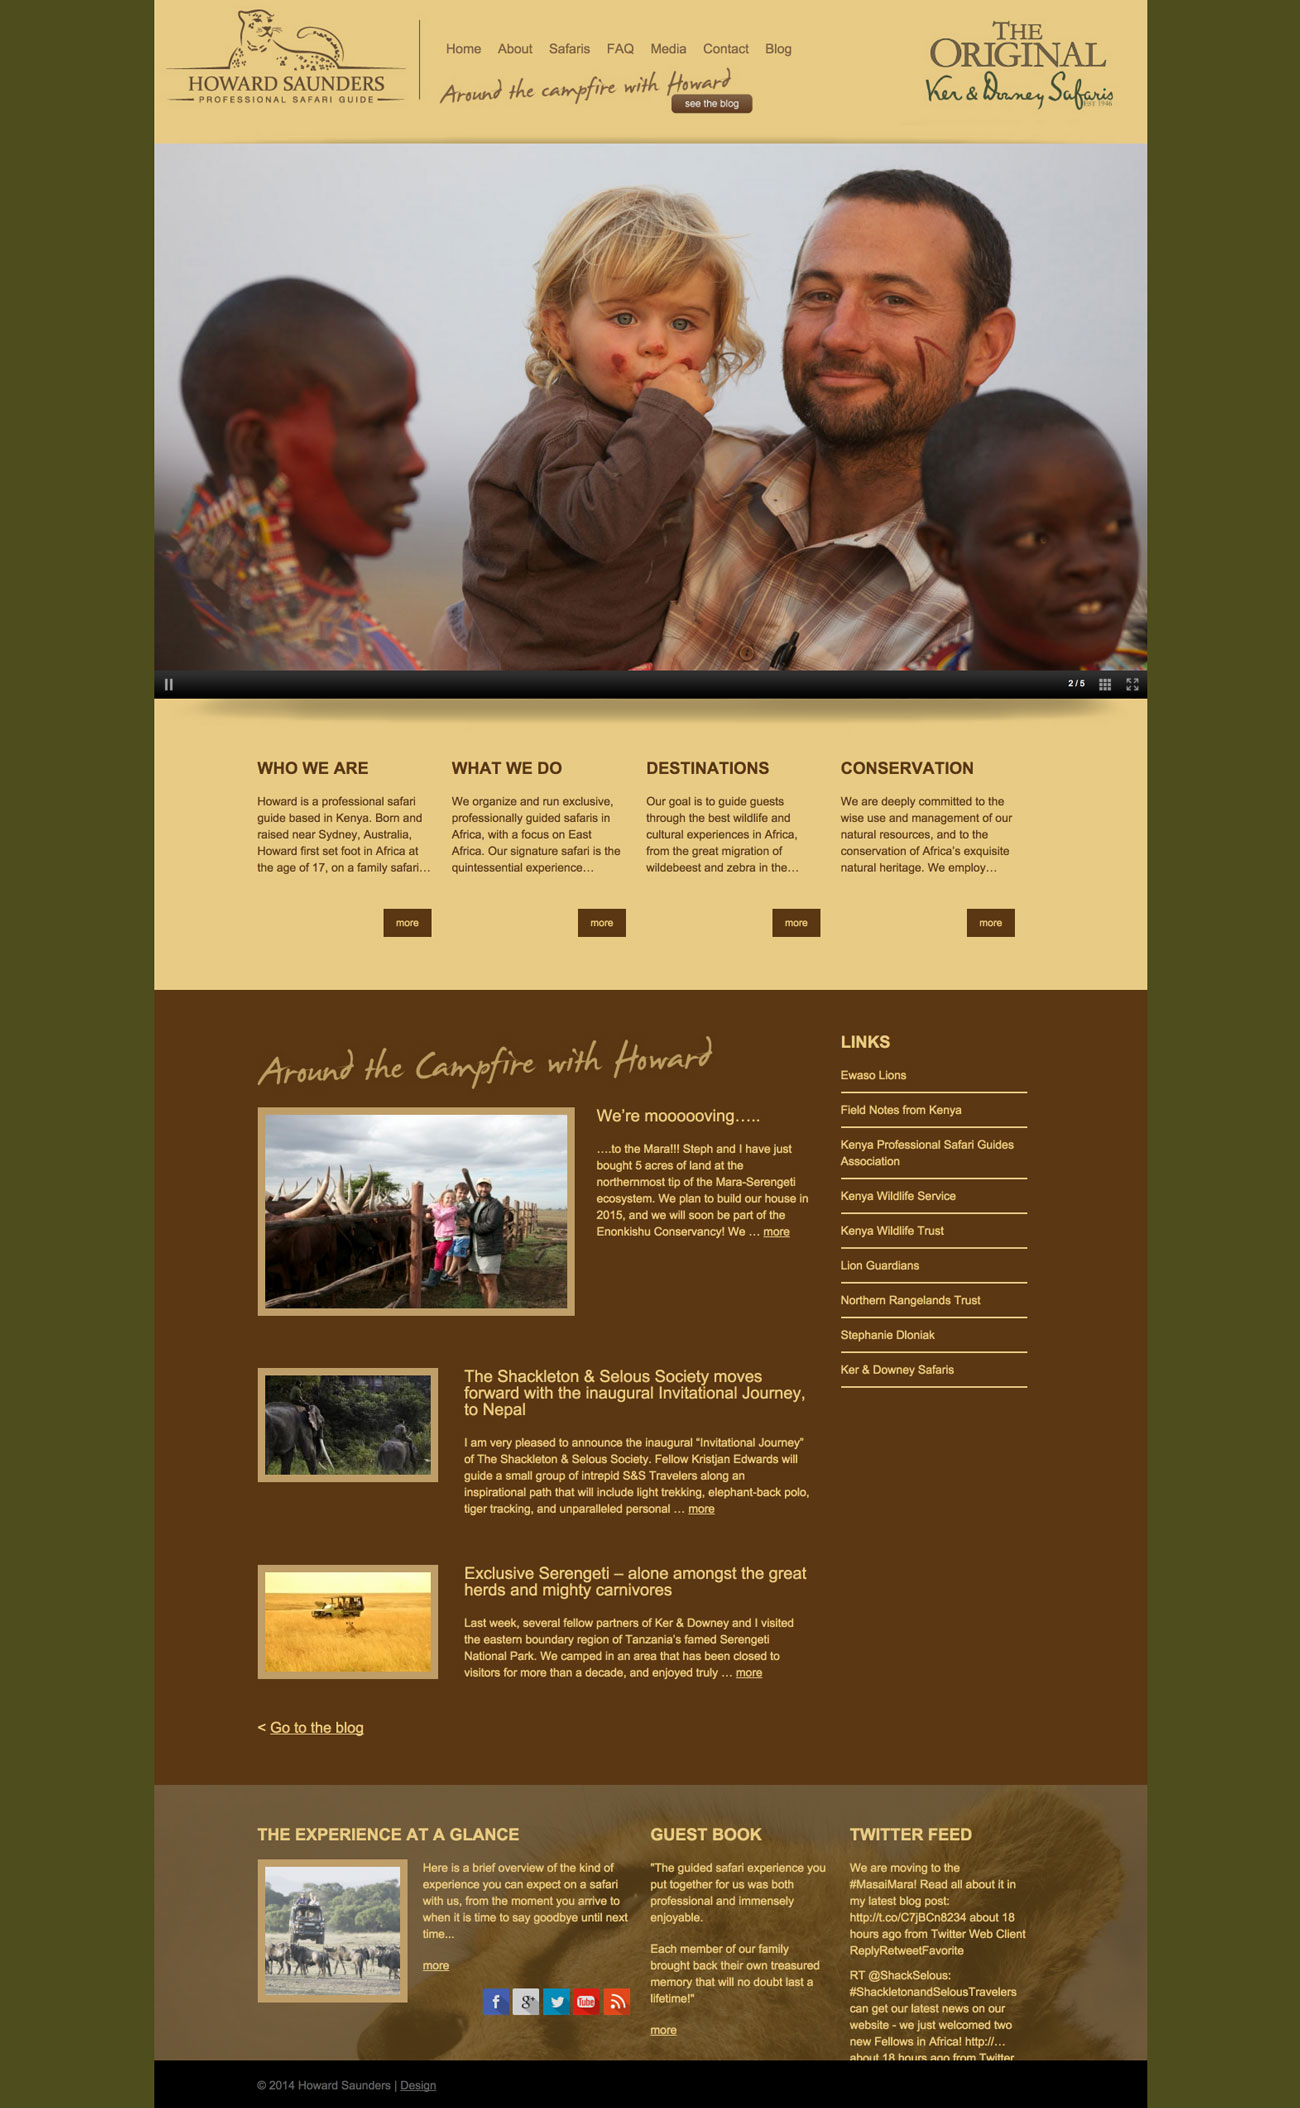 Howard Saunders Safaris - Welcome to the website of Howard Saunders, professional safari guide.